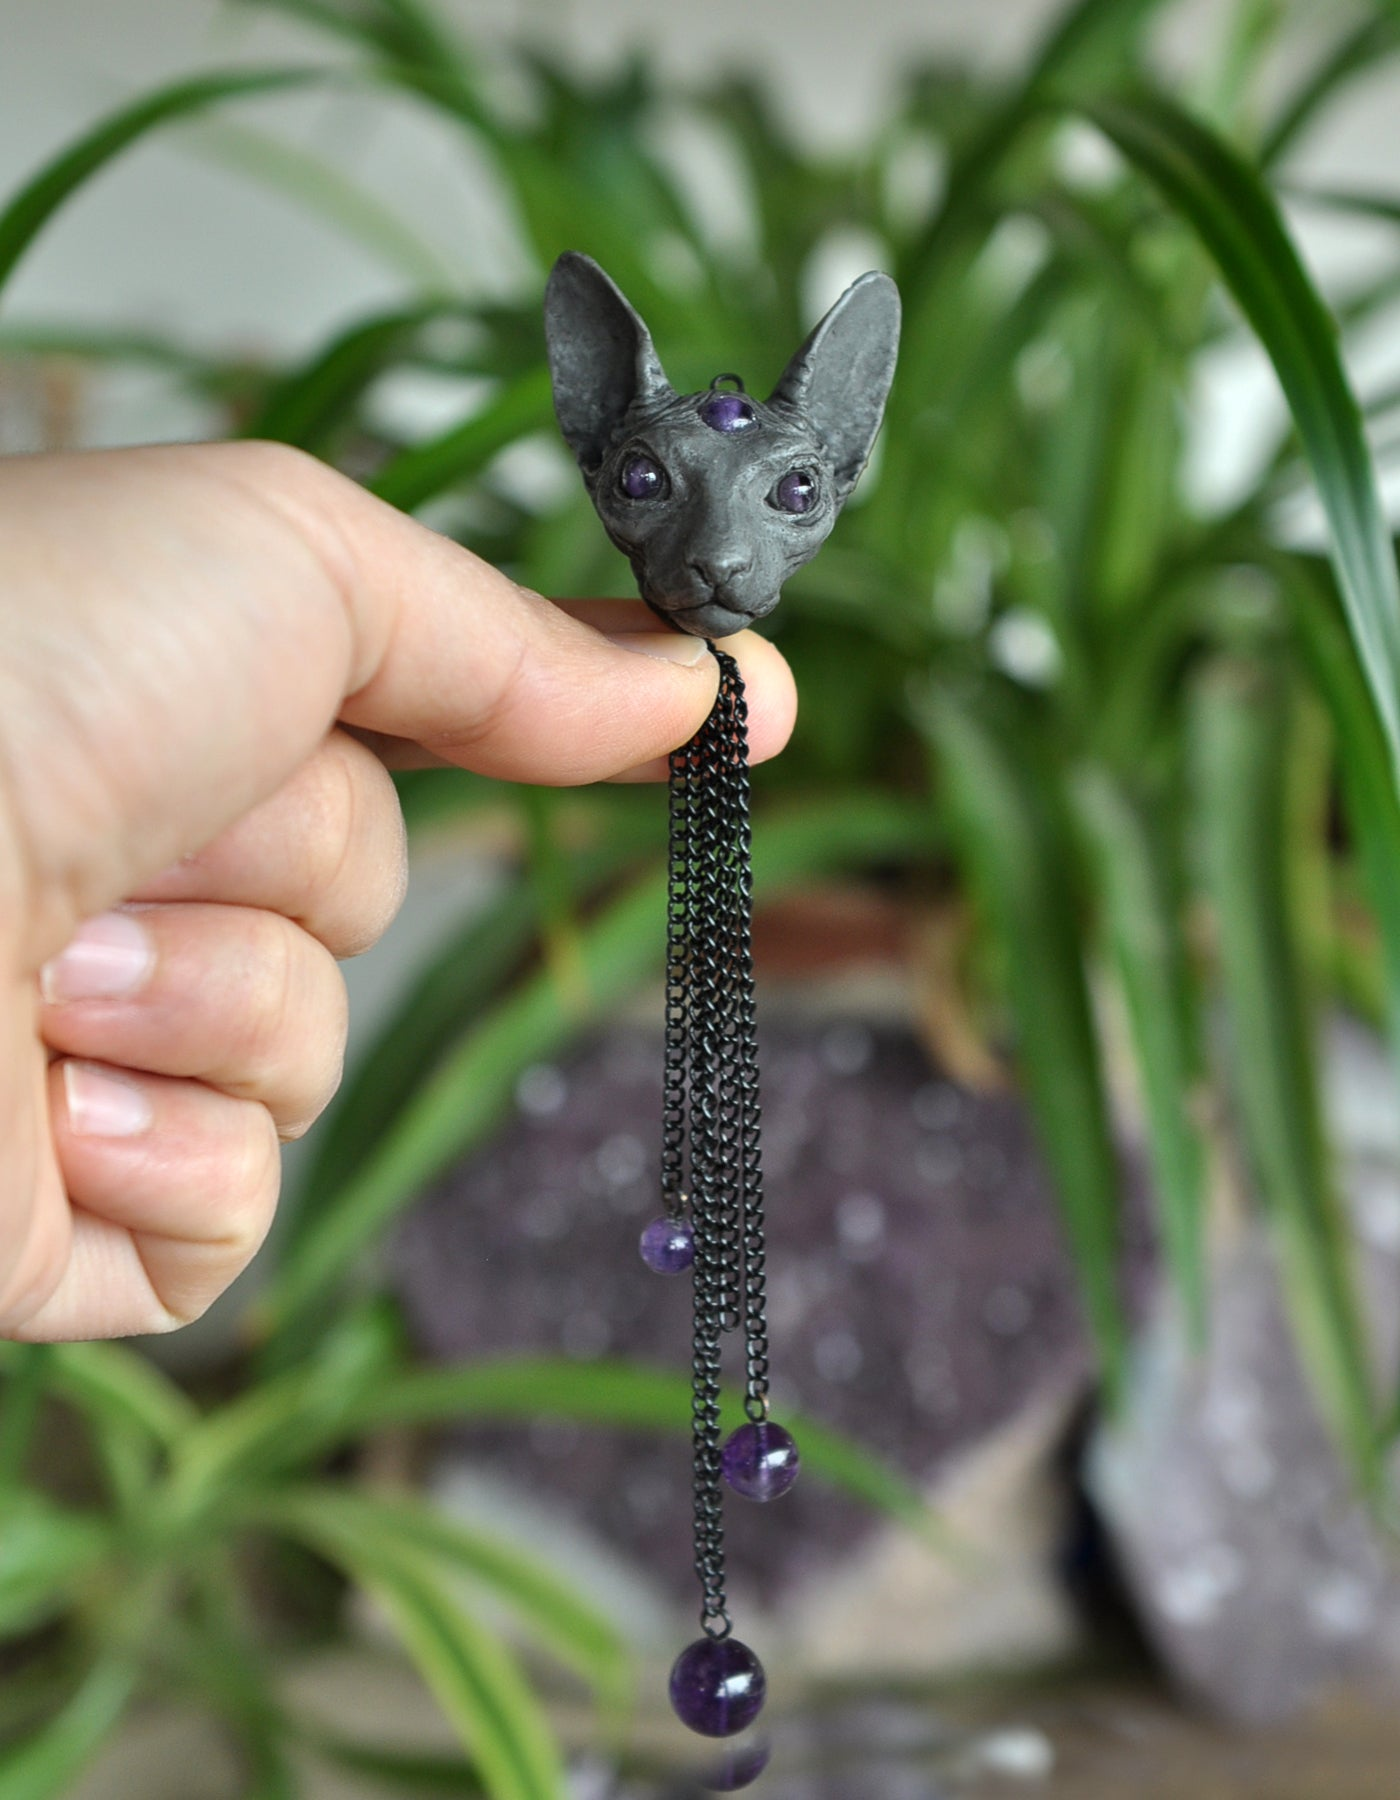 Sphynx Cat Necklace, Sphynx Cat Miniature Sculpture Pendant, Amethyst Gems Necklace, Cat Jewelry